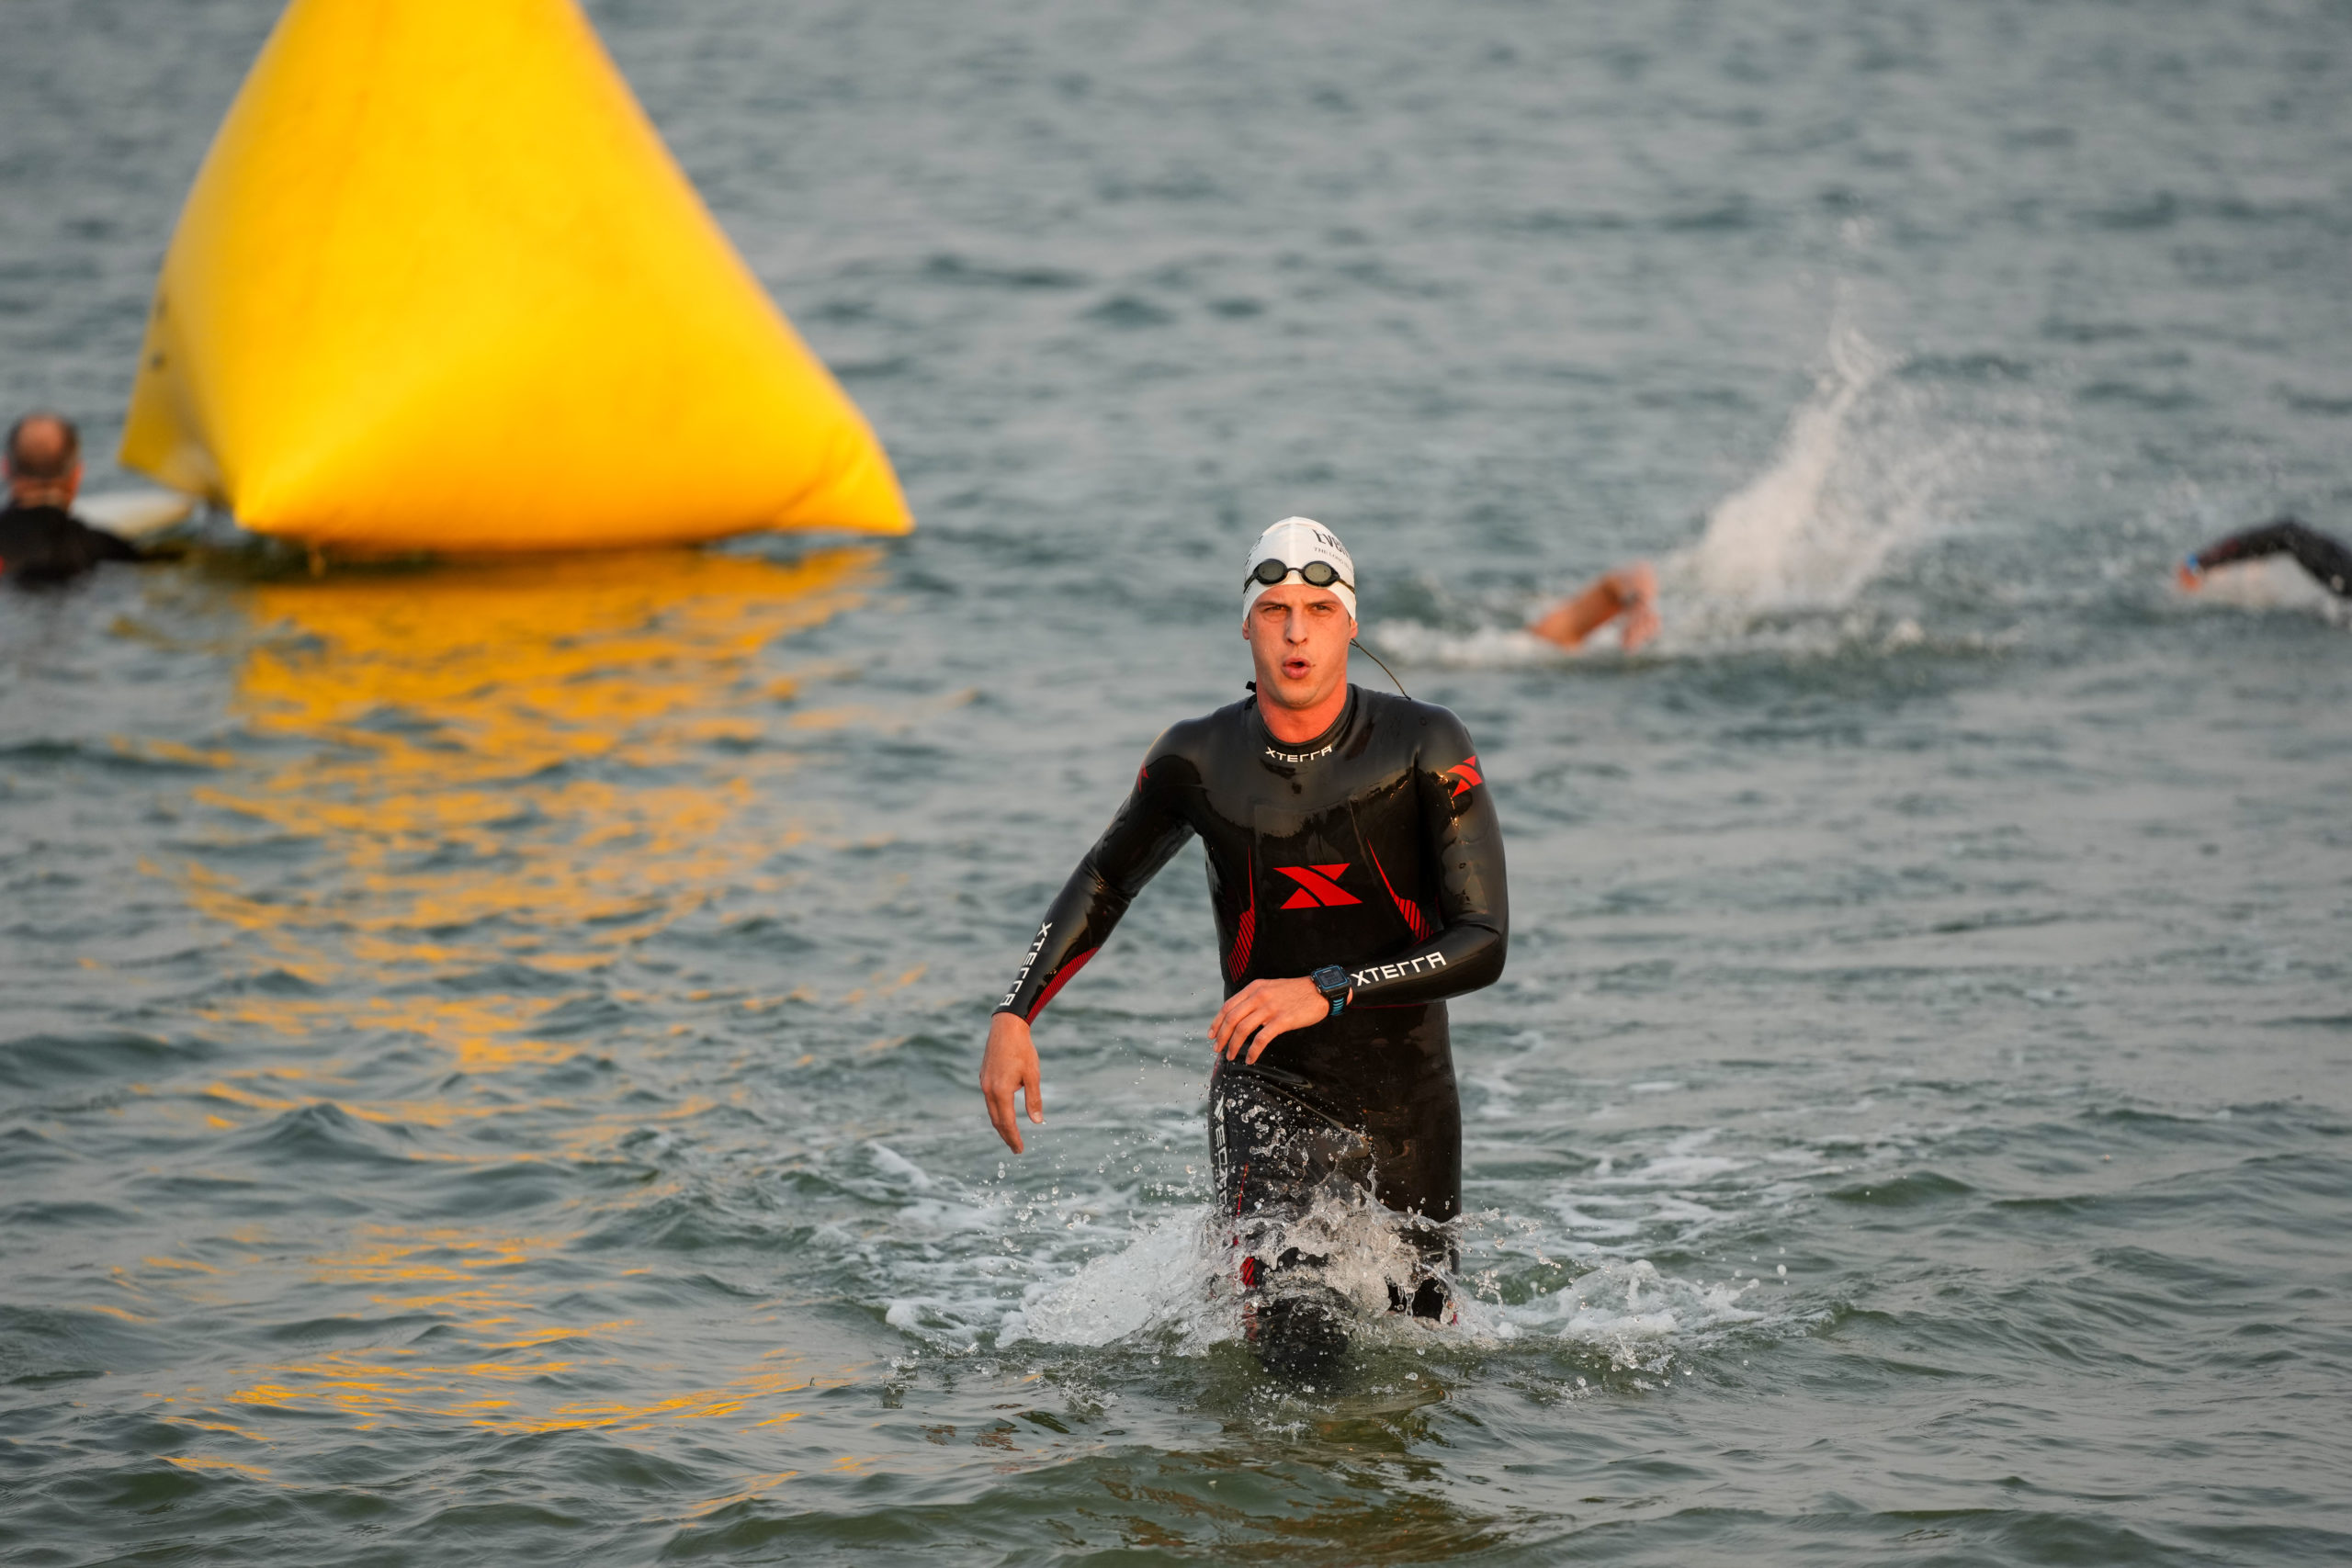 A triathlete gets out of the water.